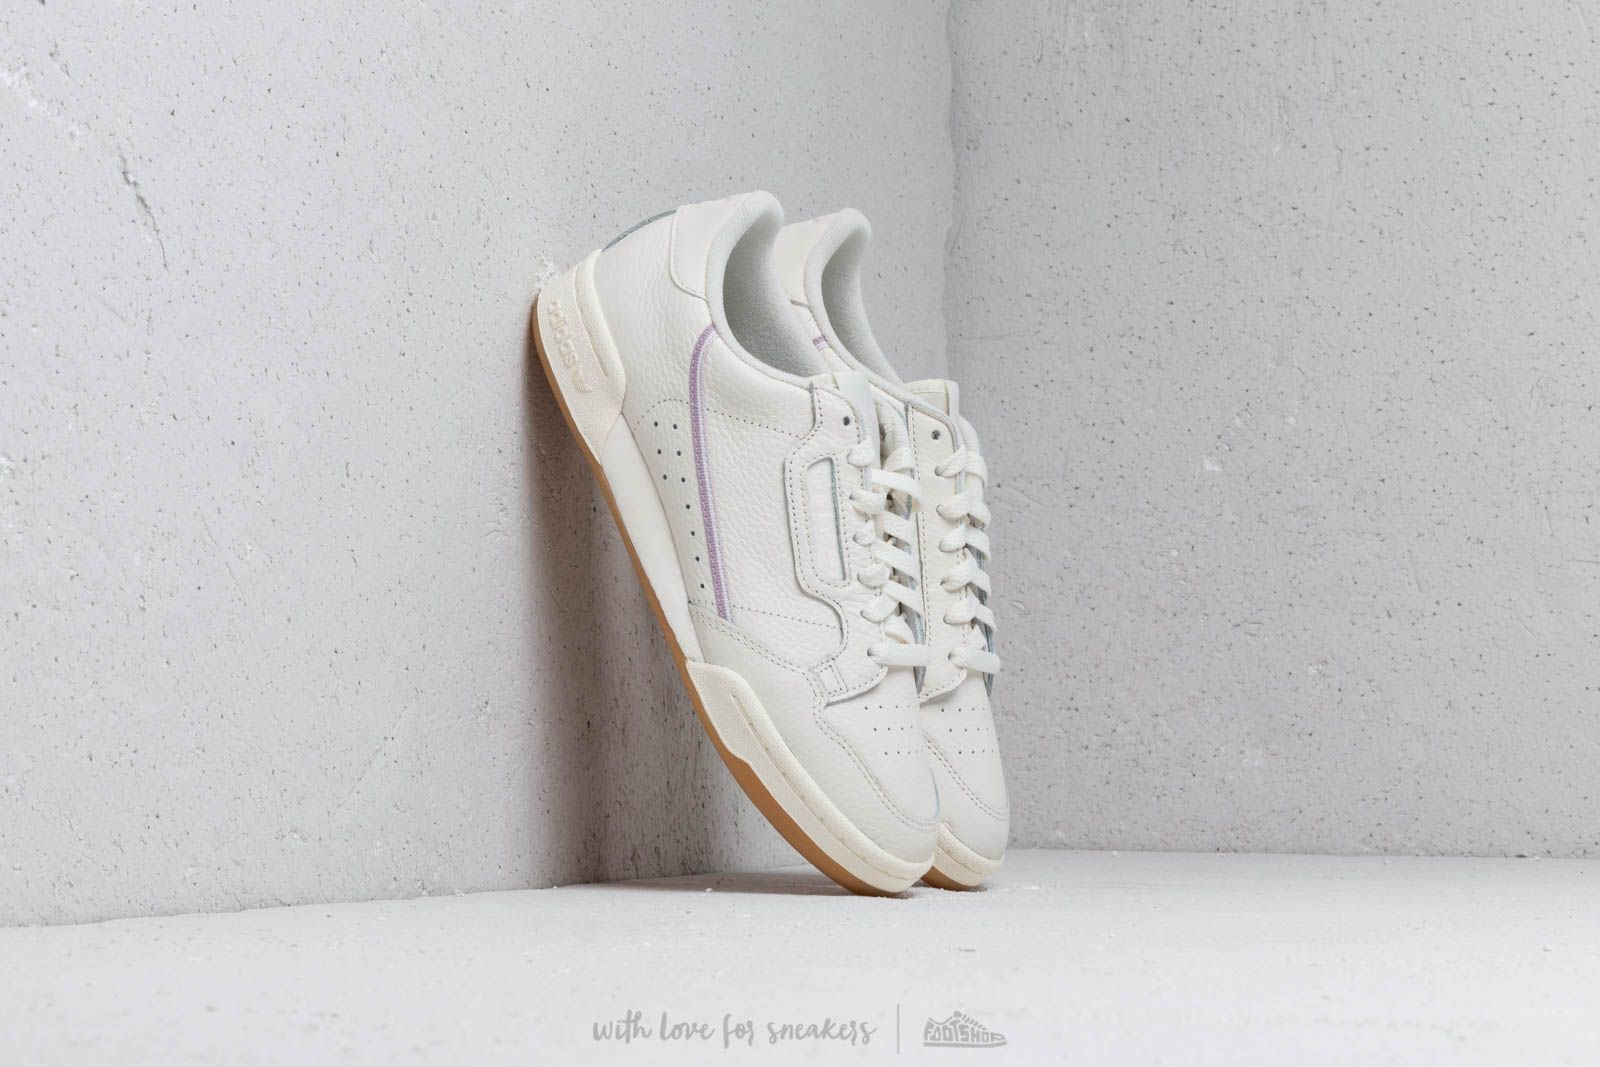 Dámské tenisky a boty adidas Continental 80 W Off White/ Orchid Tint/ Soft Vision